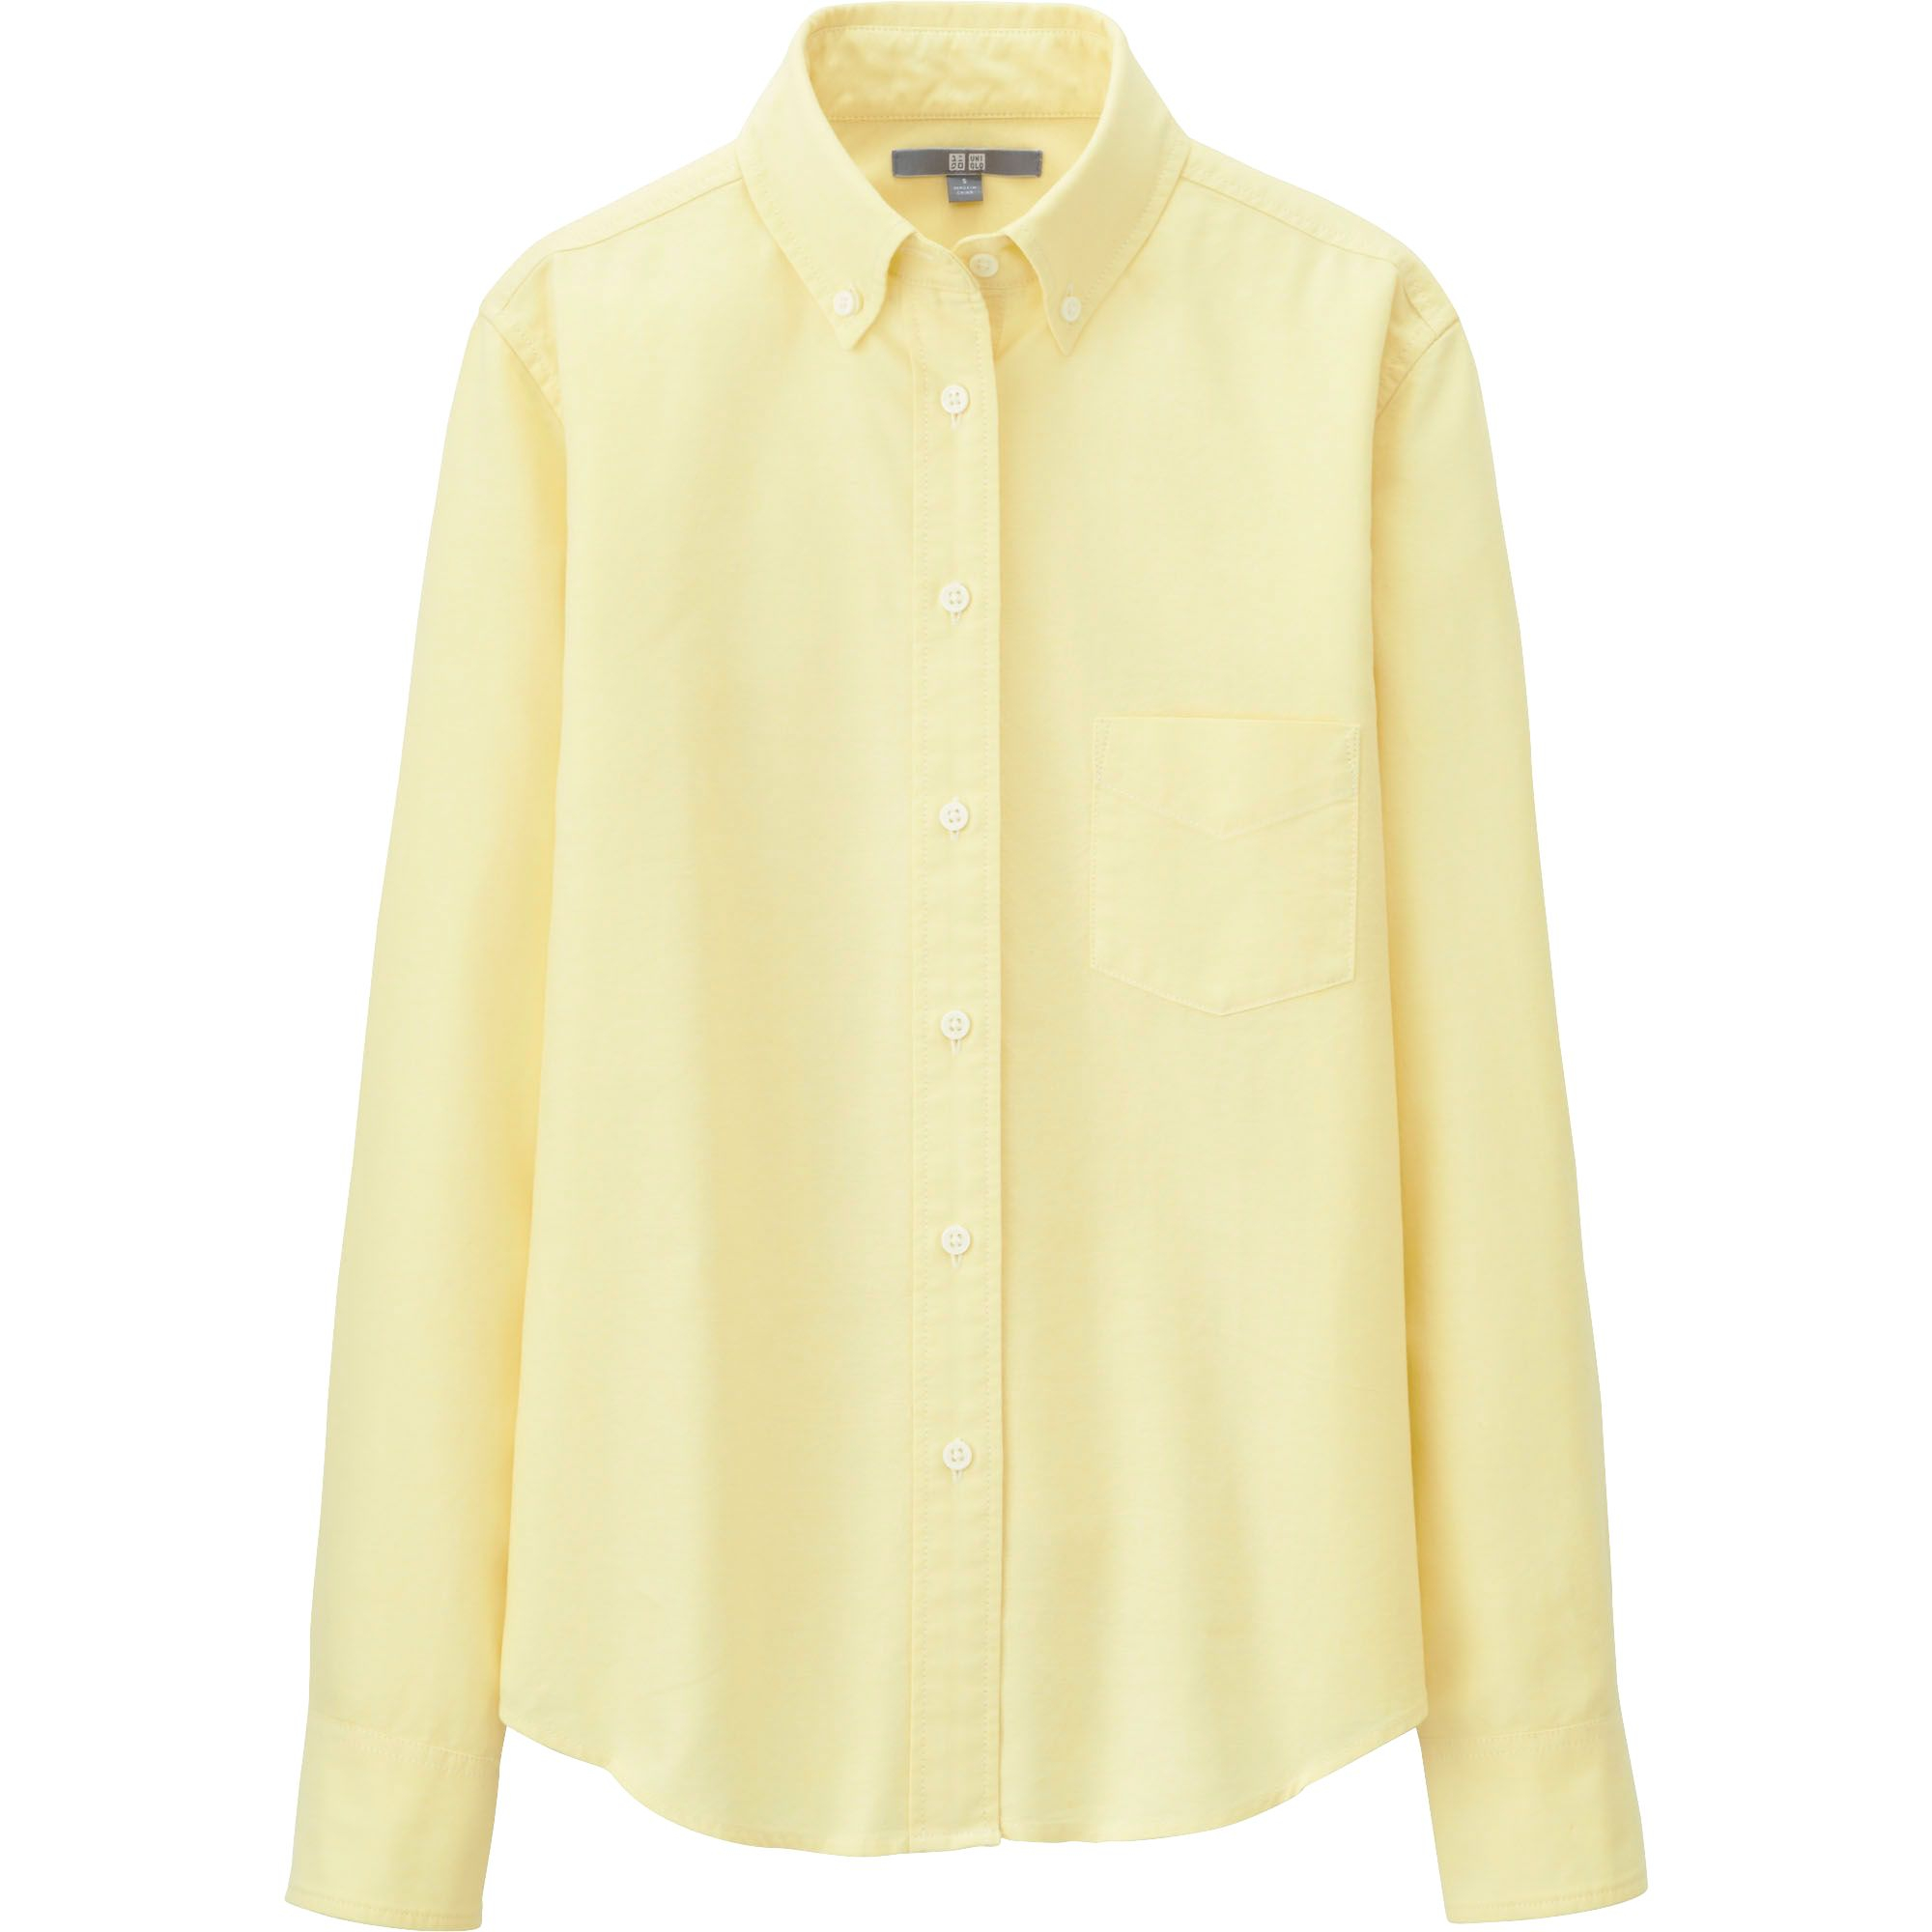 Uniqlo Oxford Long Sleeve Shirt In Yellow For Men Lyst